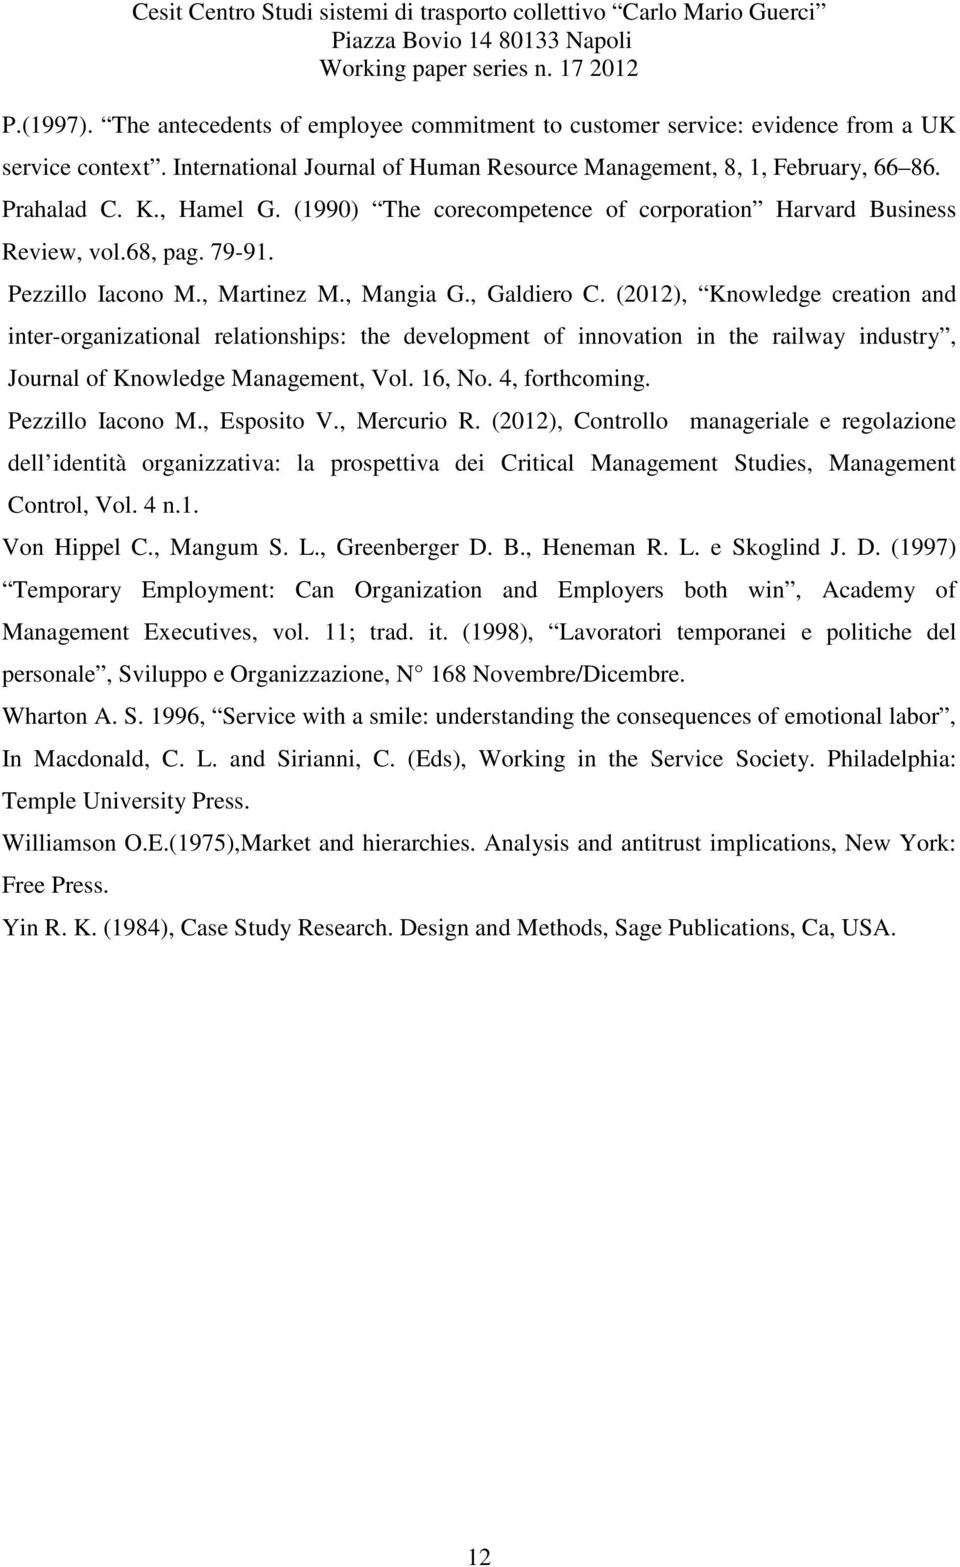 (2012), Knowledge creation and inter-organizational relationships: the development of innovation in the railway industry, Journal of Knowledge Management, Vol. 16, No. 4, forthcoming.